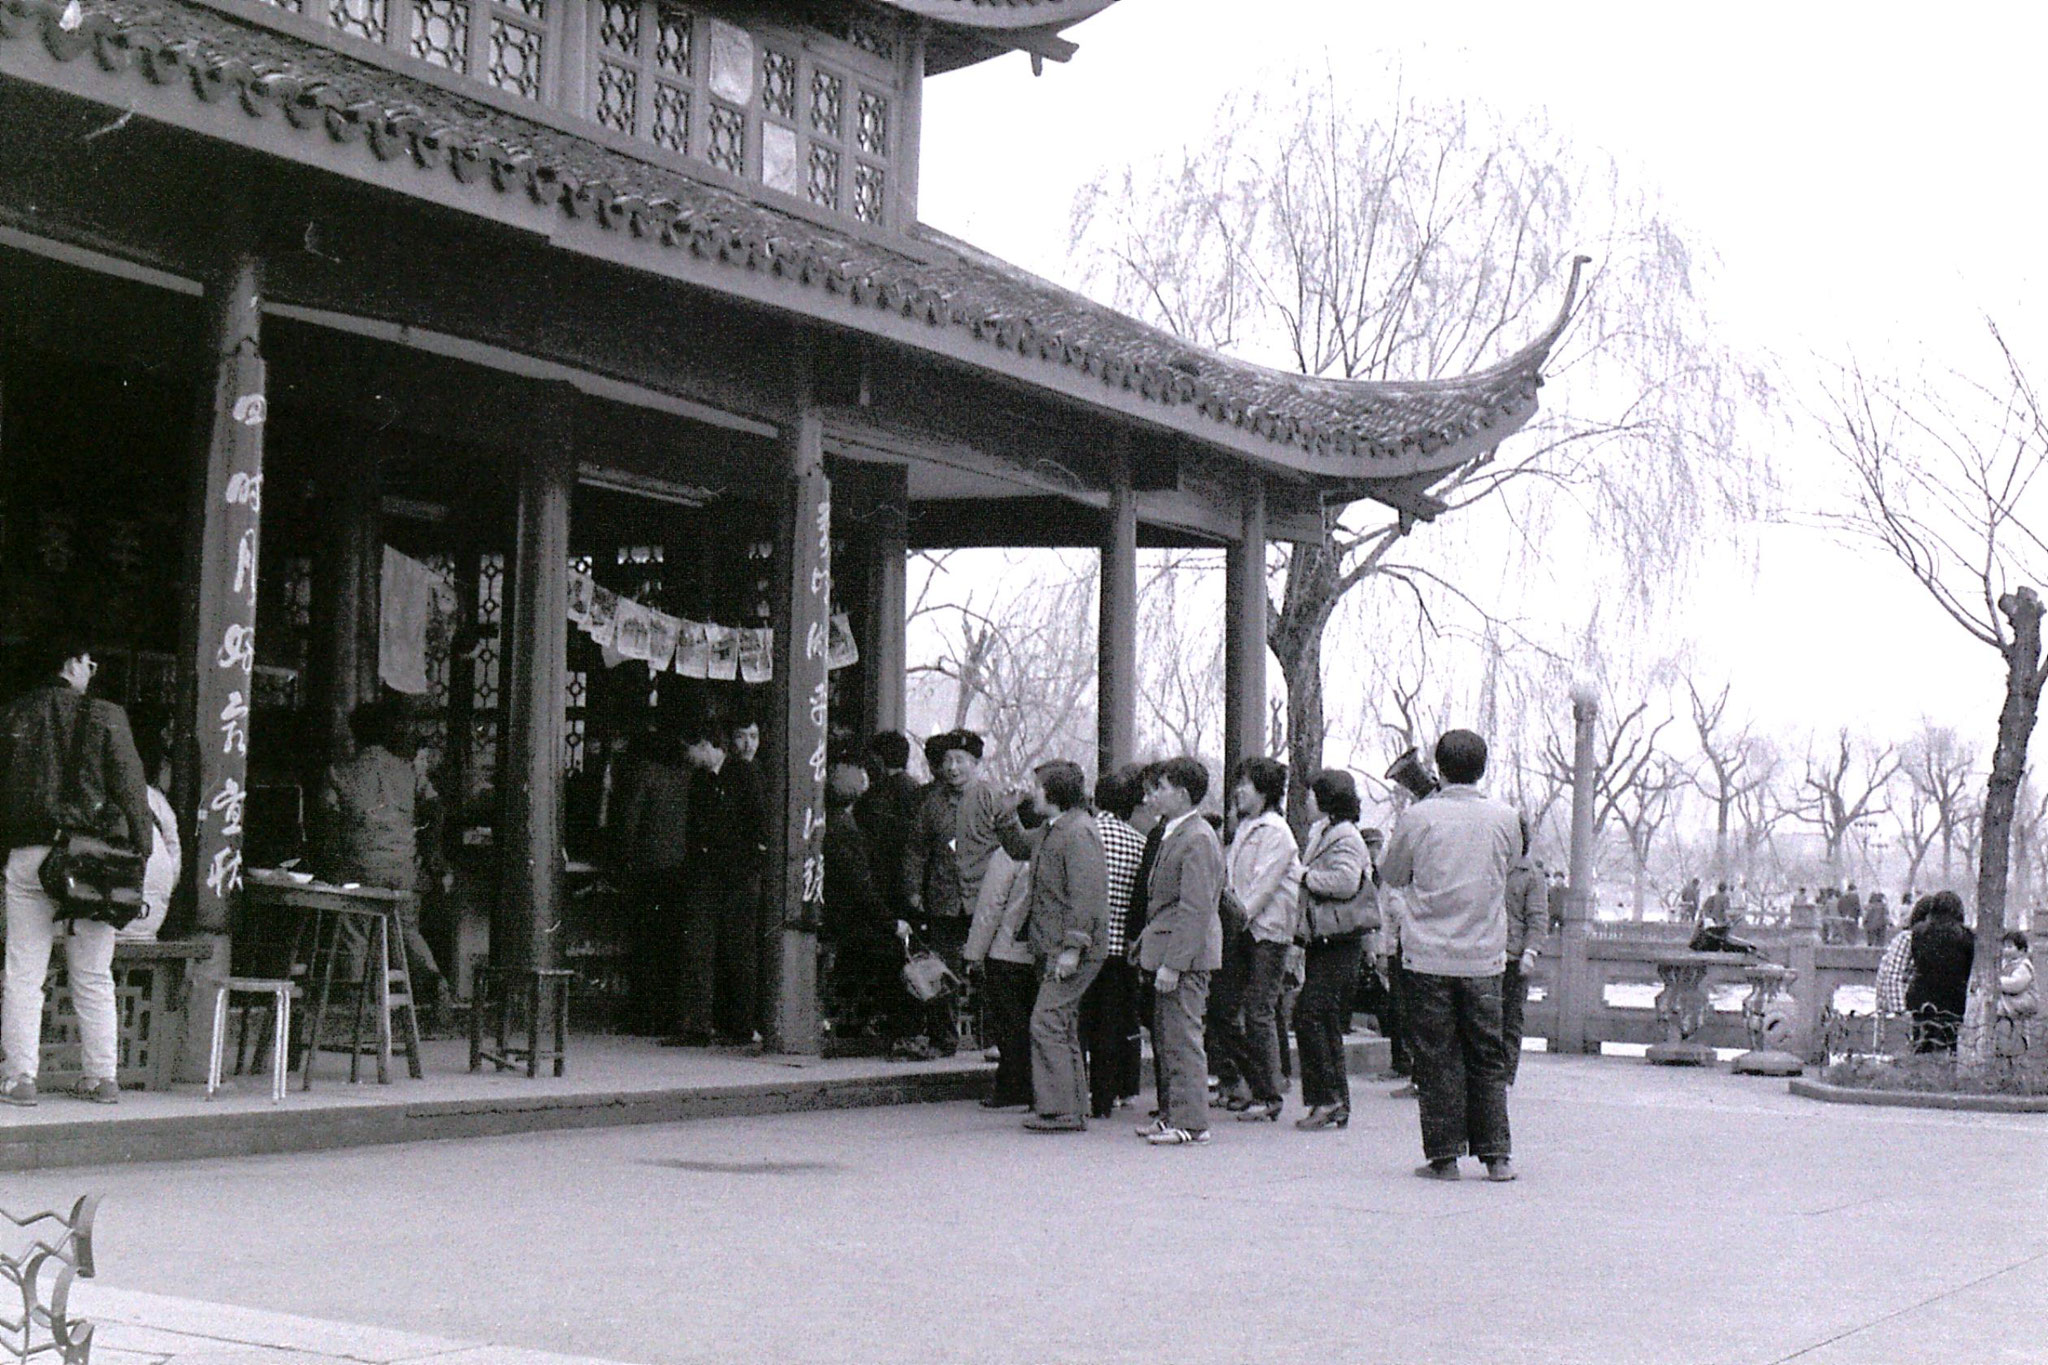 25/3/1989: 32: Hangzhou at teahouse on lake, man with megaphone